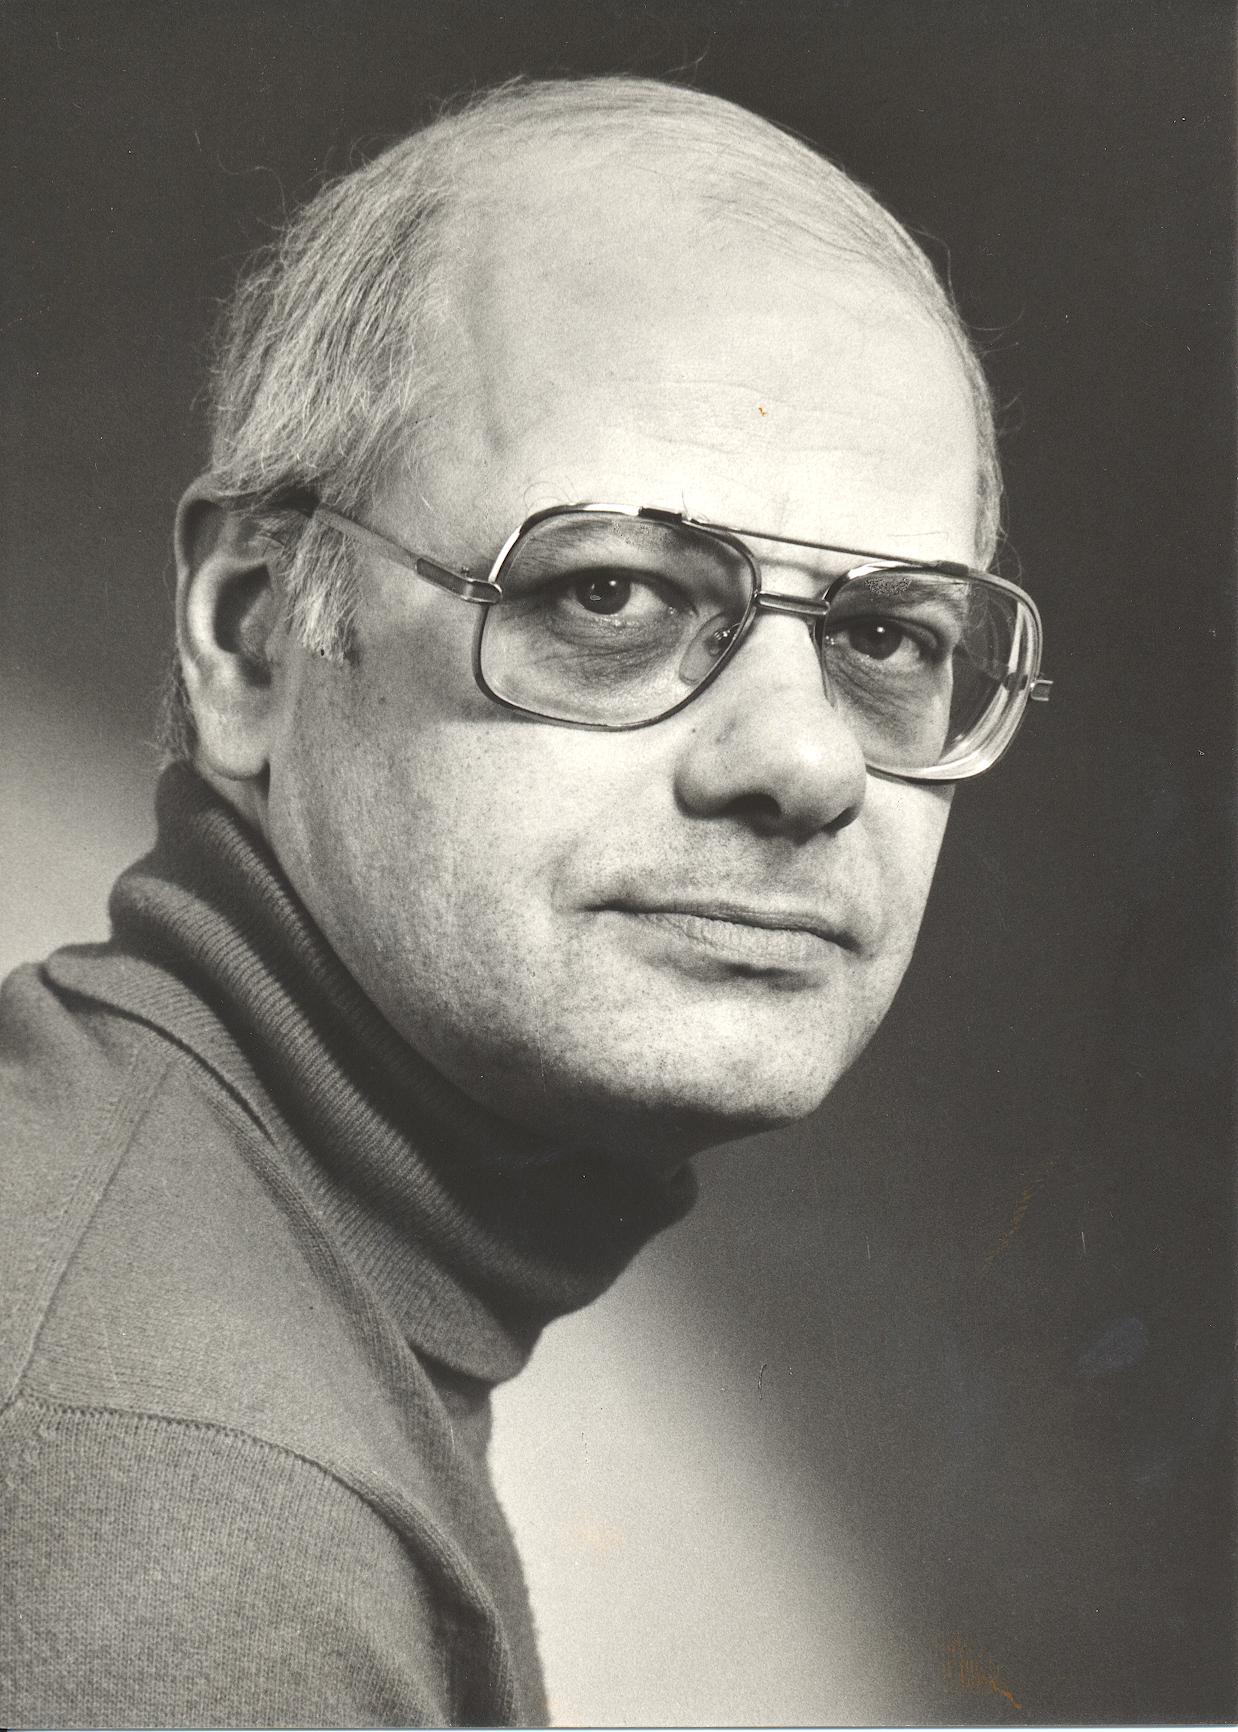 VII. Internationaler Imago Mundi-Kongress 1978, Innsbruck, Prof. Dr. Wilhelm Gauger